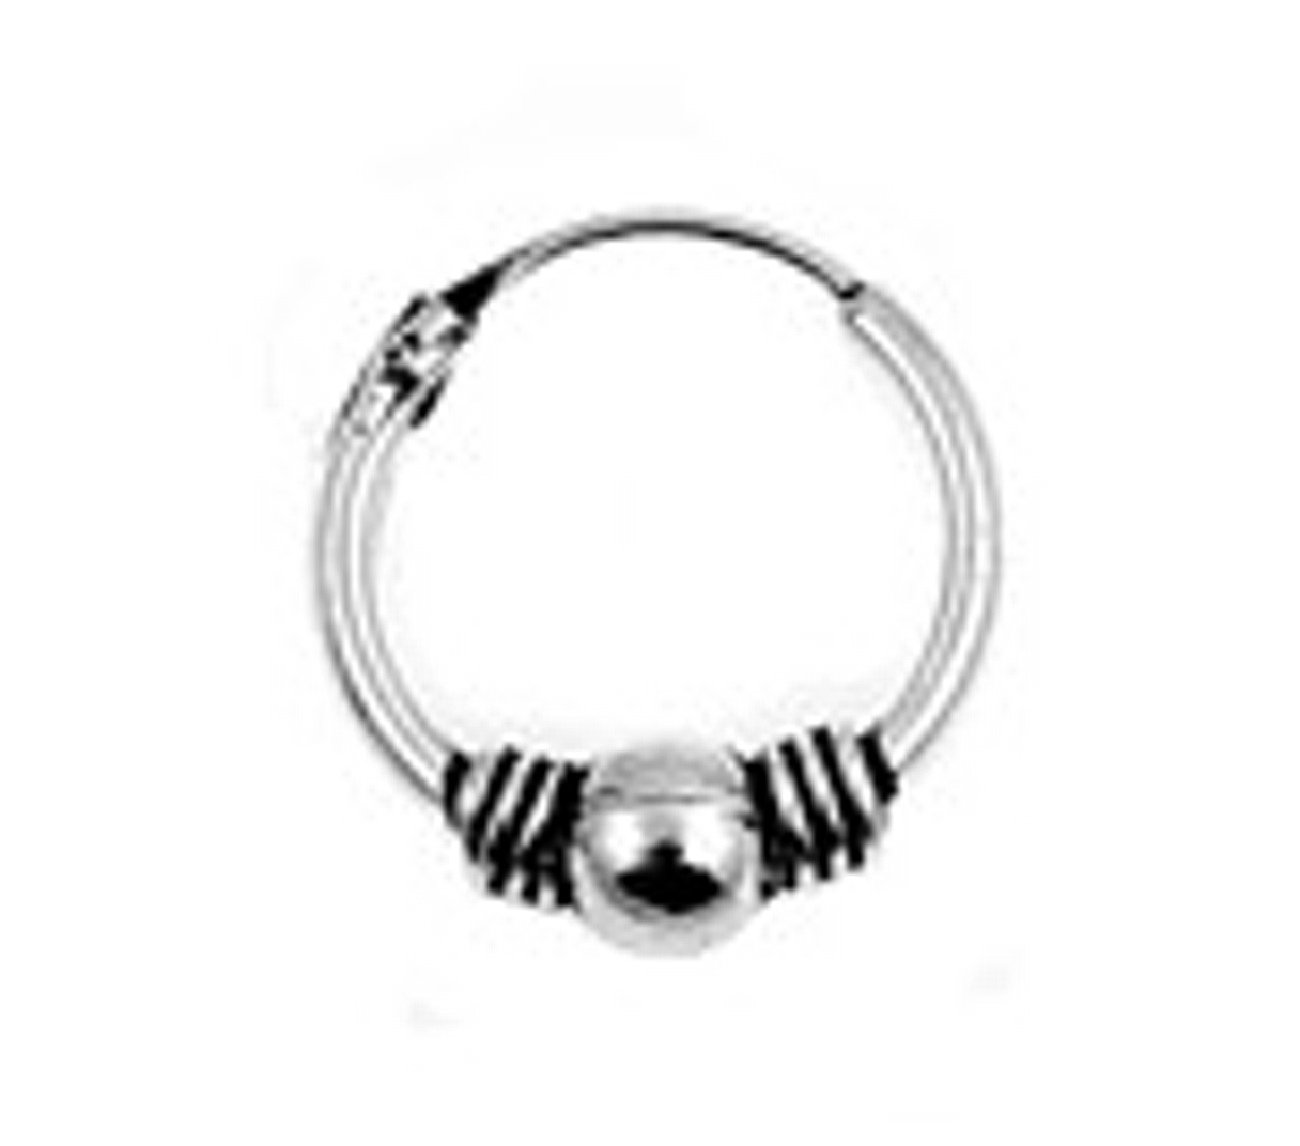 "11.5mm (7/16"") Diameter Wire Ball Tubular Endless Single Hoop Earring"